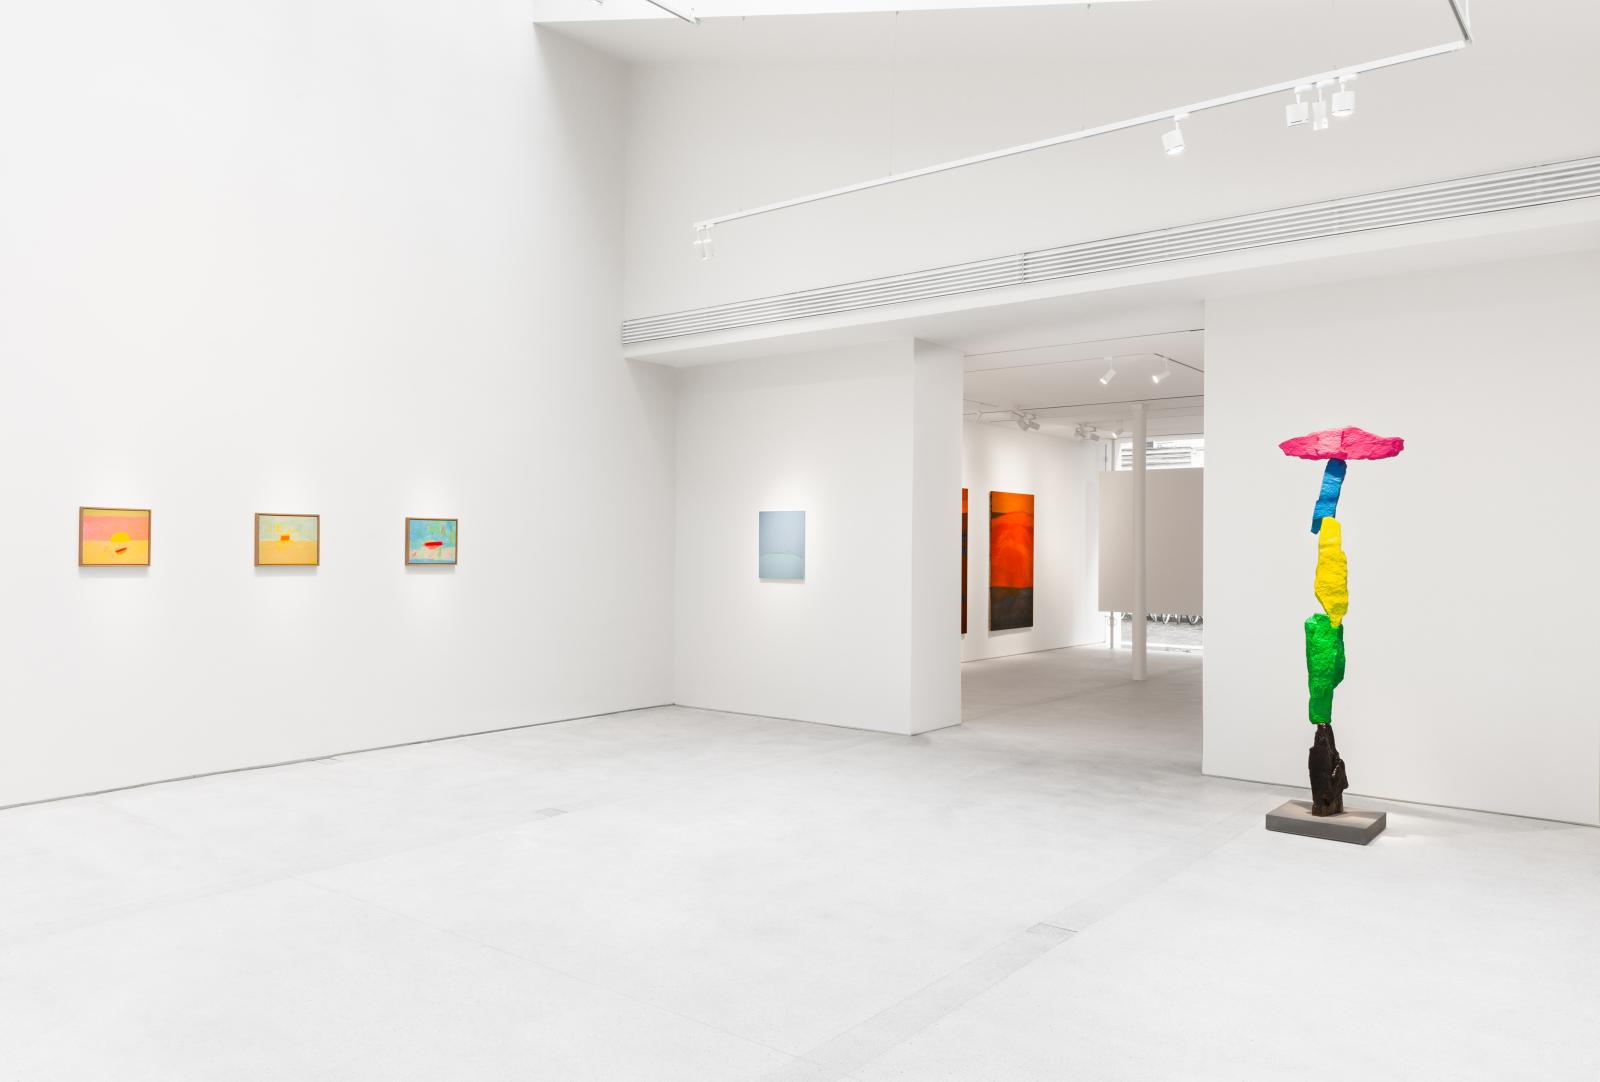 "Installation view, ""Horizons"", curated by Etel Adnan, Lévy Gorvy Paris, 2021.From left to right: Etel Adnan, Horizon 4, Horizon 5 and Hori"